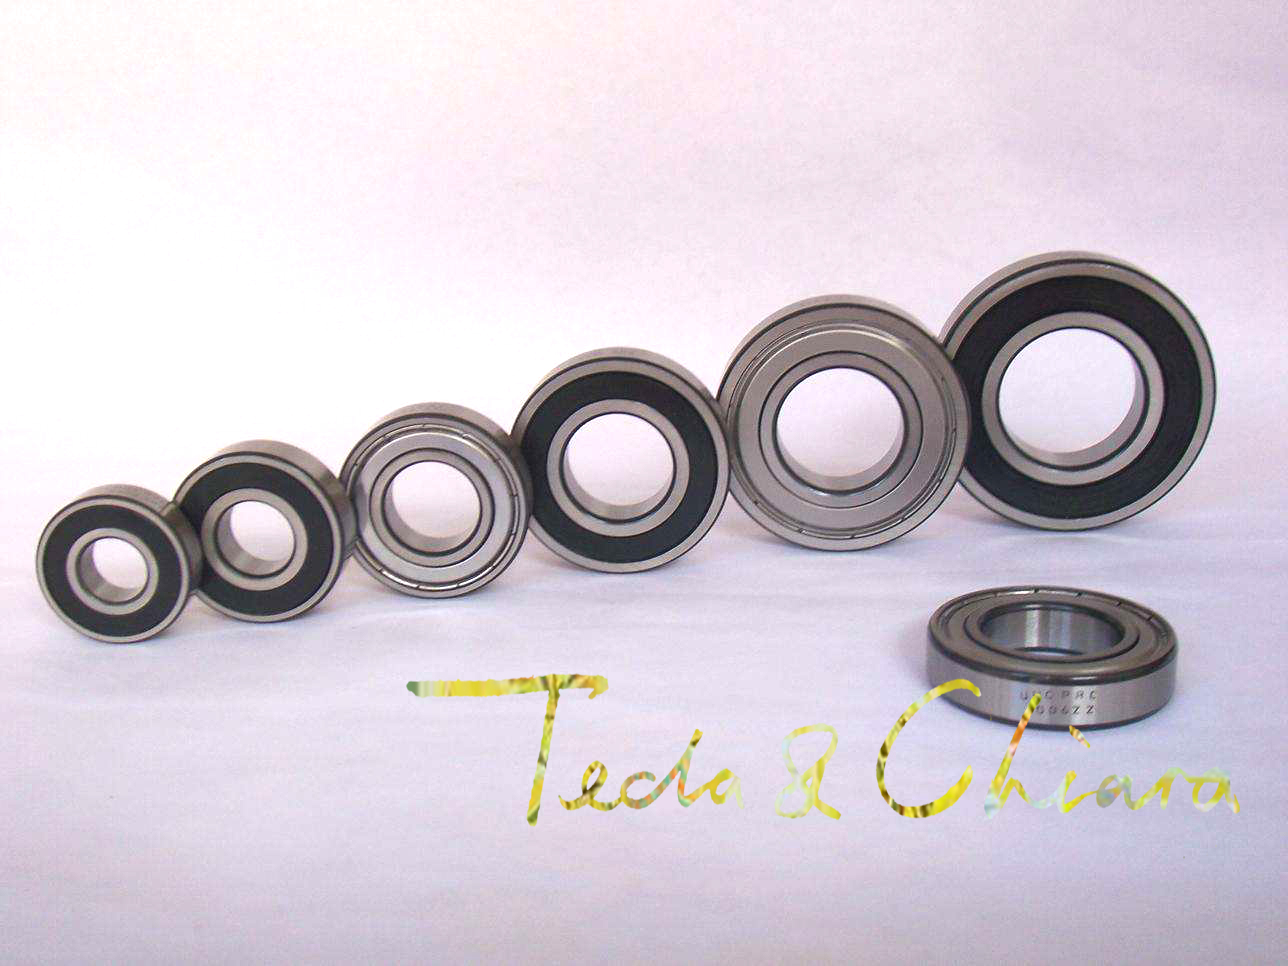 677ZZ MR117 MR117ZZ MR117RS MR117-2Z MR117Z MR117-2RS 677 677RS ZZ RS RZ 2RZ Deep Groove Ball Bearings 7 x 11 x 3mm High Quality gcr15 6328 zz or 6328 2rs 140x300x62mm high precision deep groove ball bearings abec 1 p0